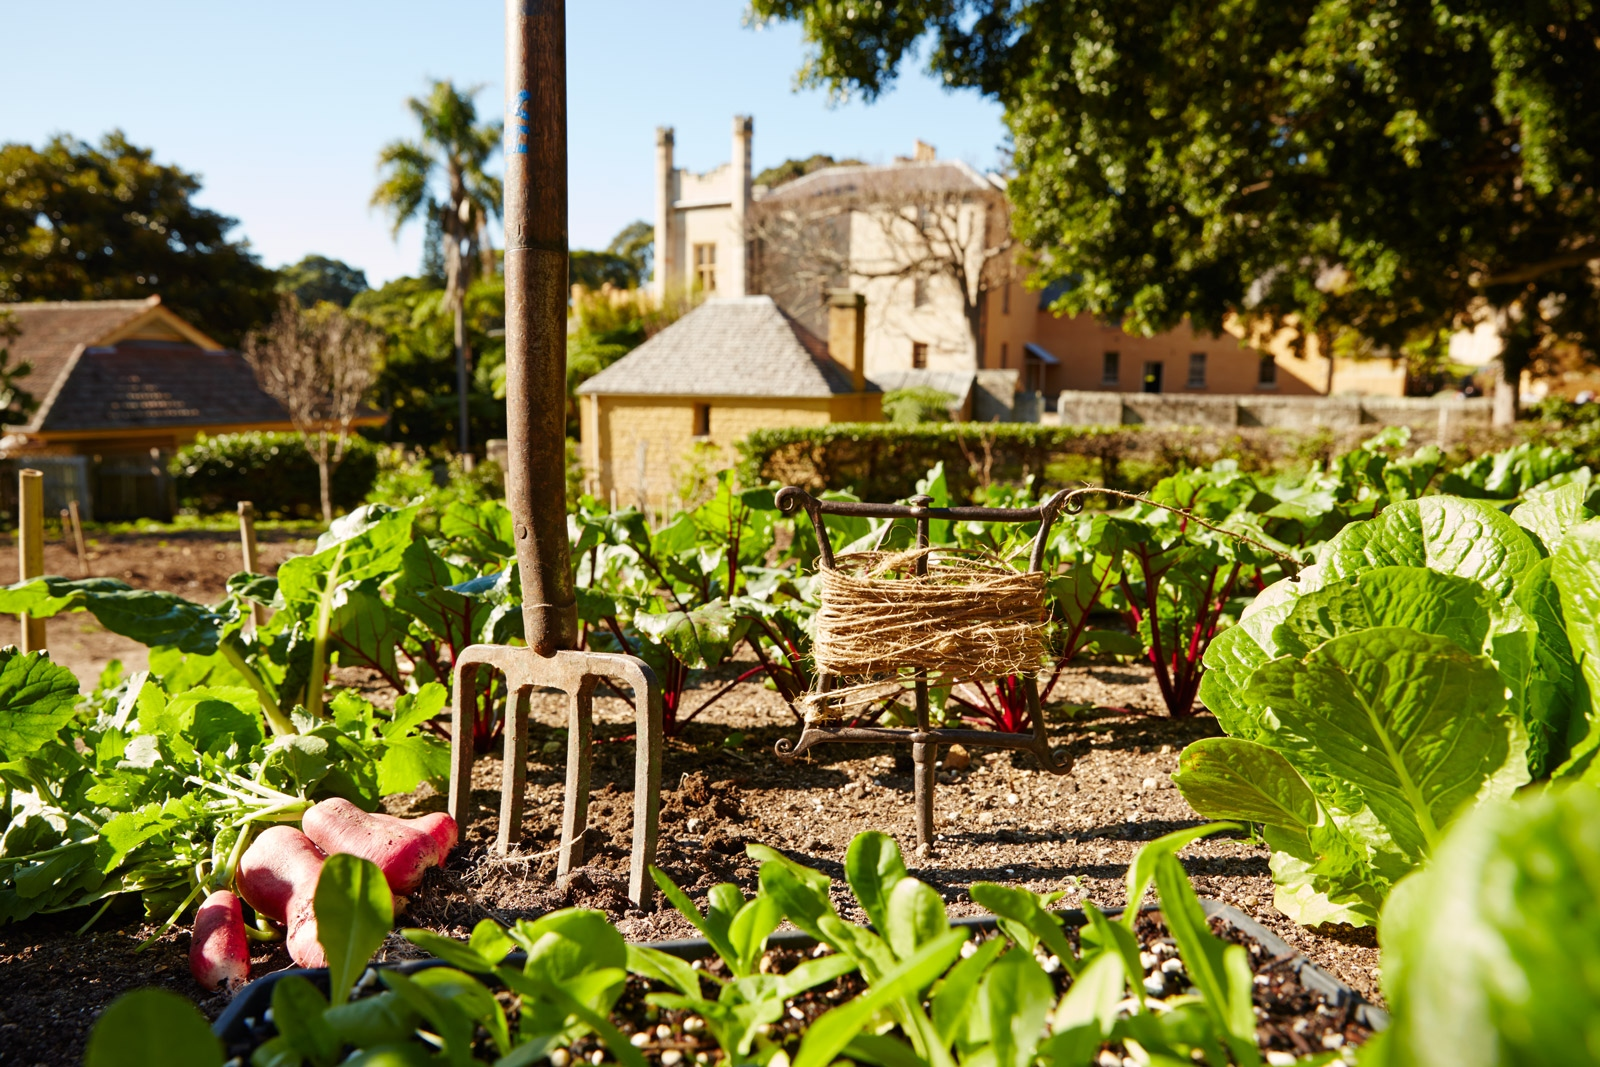 Gardening fork in the ground within the kitchen garden at Vaucluse House